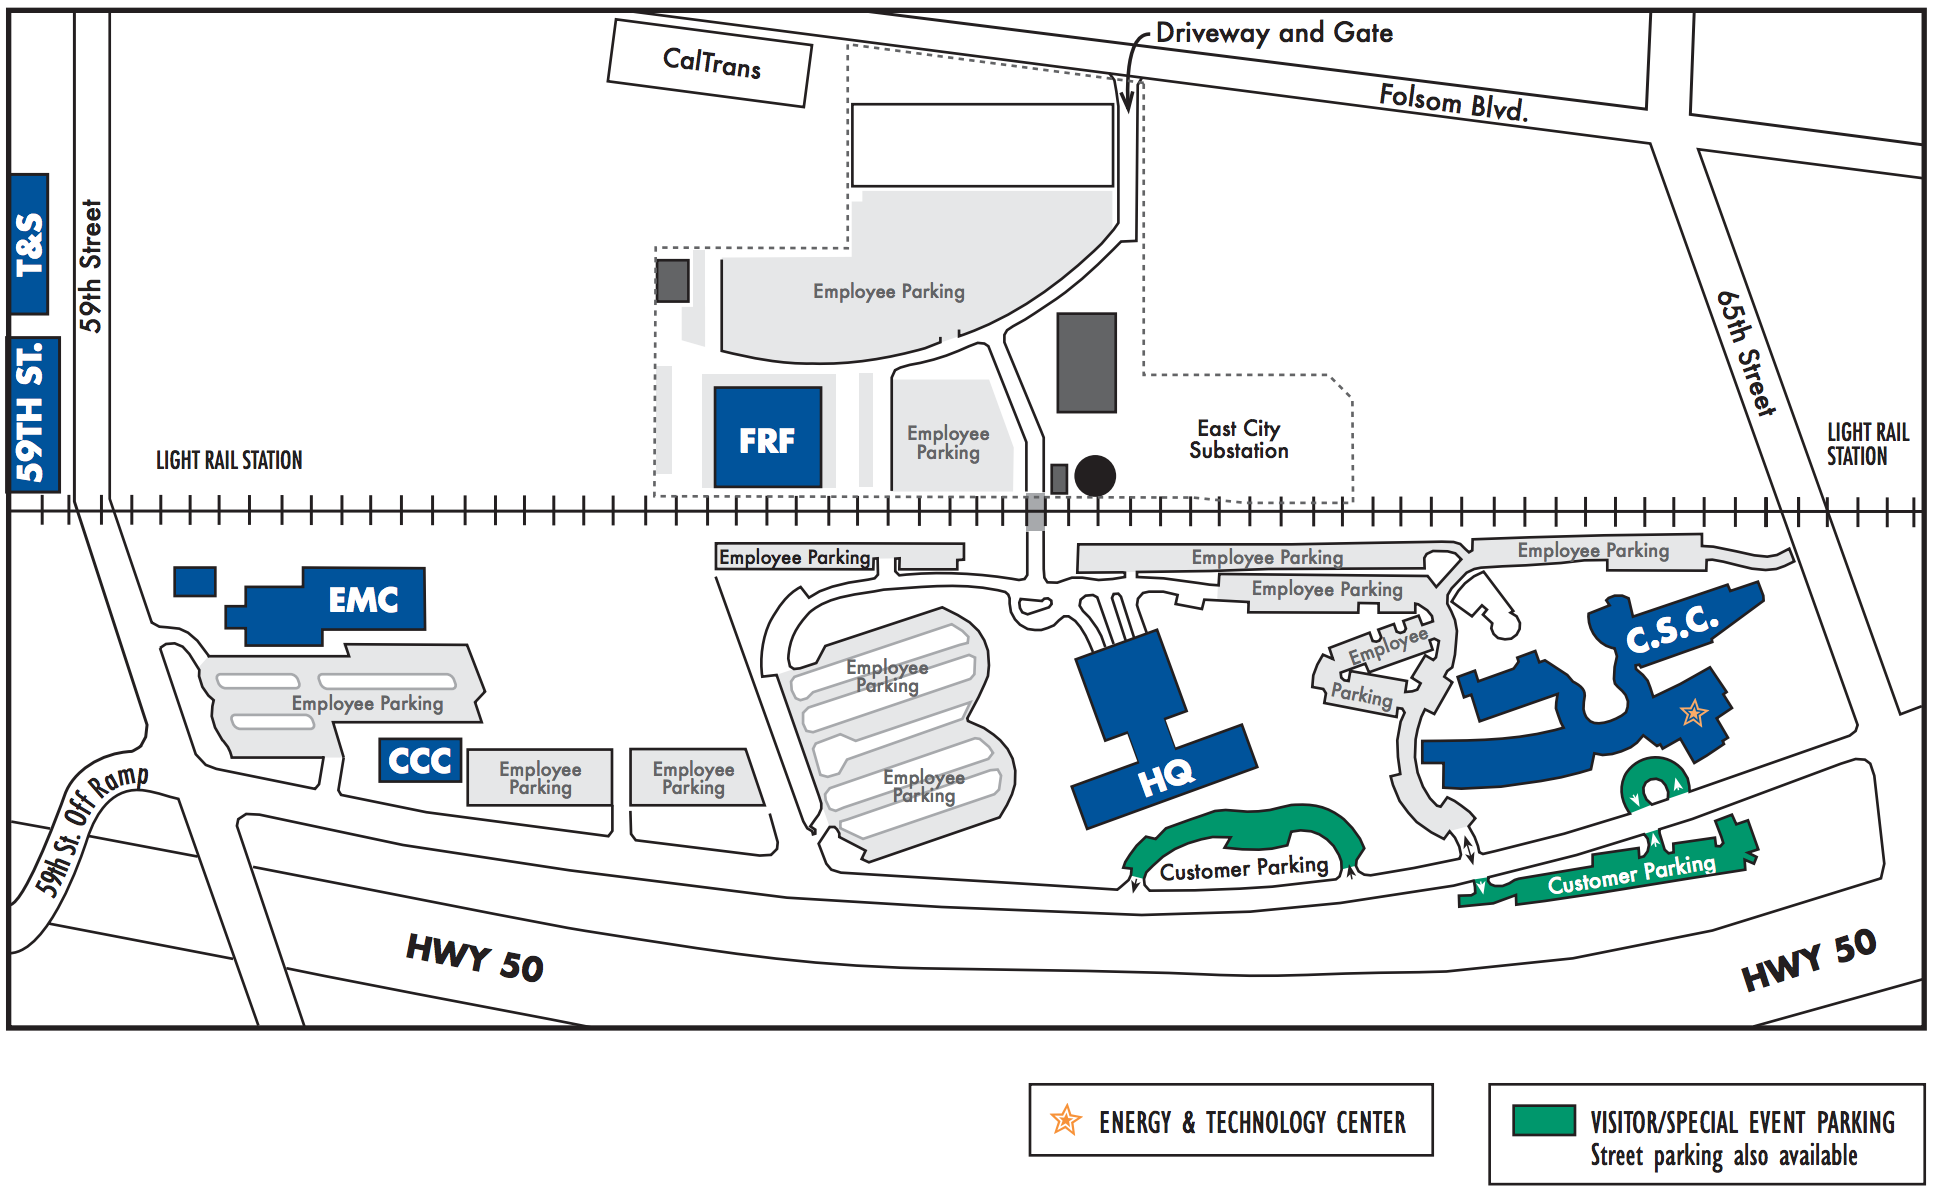 SMUD Parking Lot Map